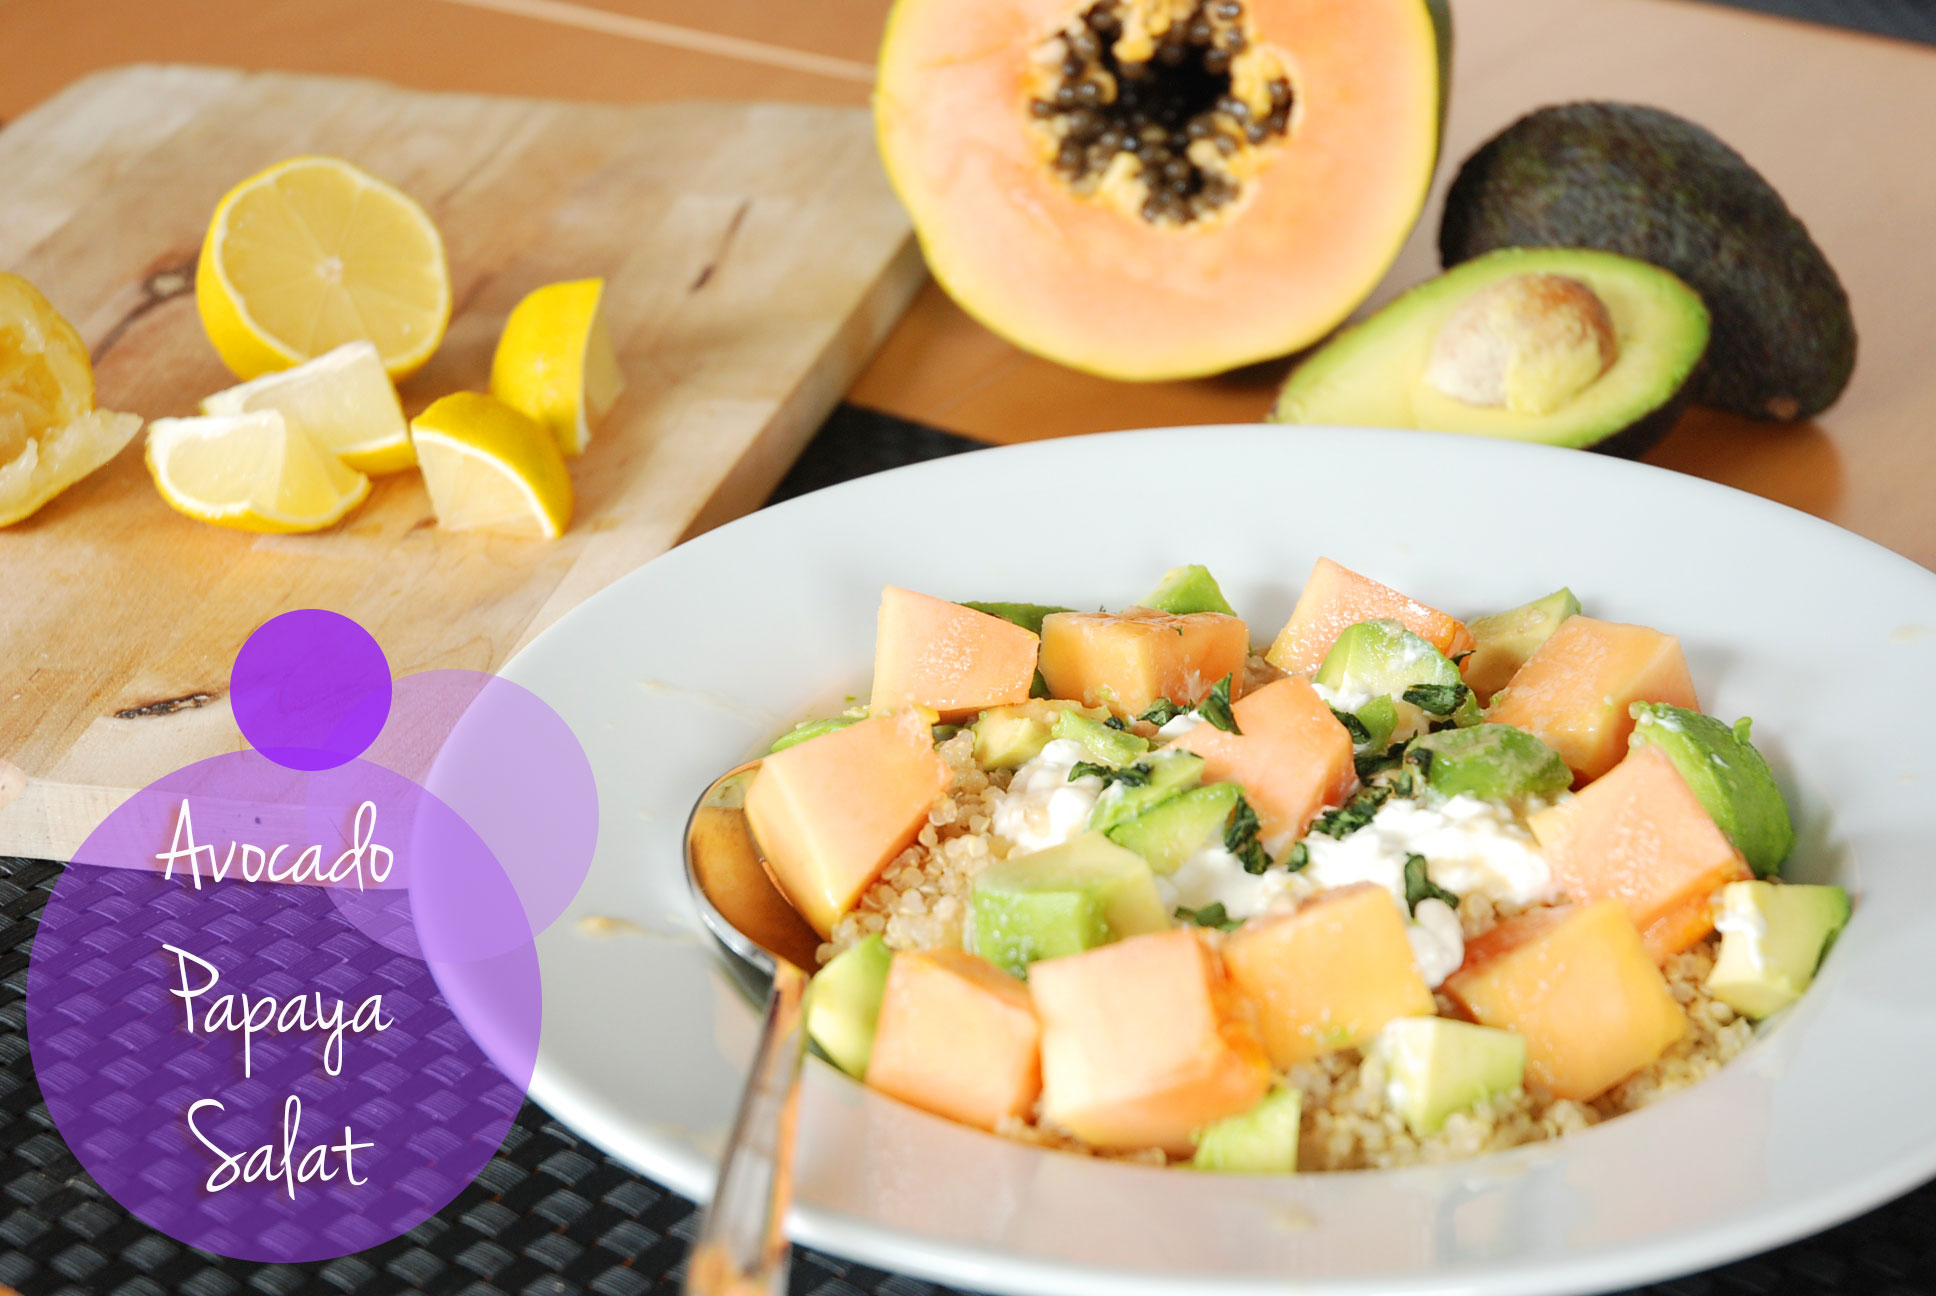 Avocado-Papaya Salat / Avocado-Papaya Salad | FIT & HAPPY